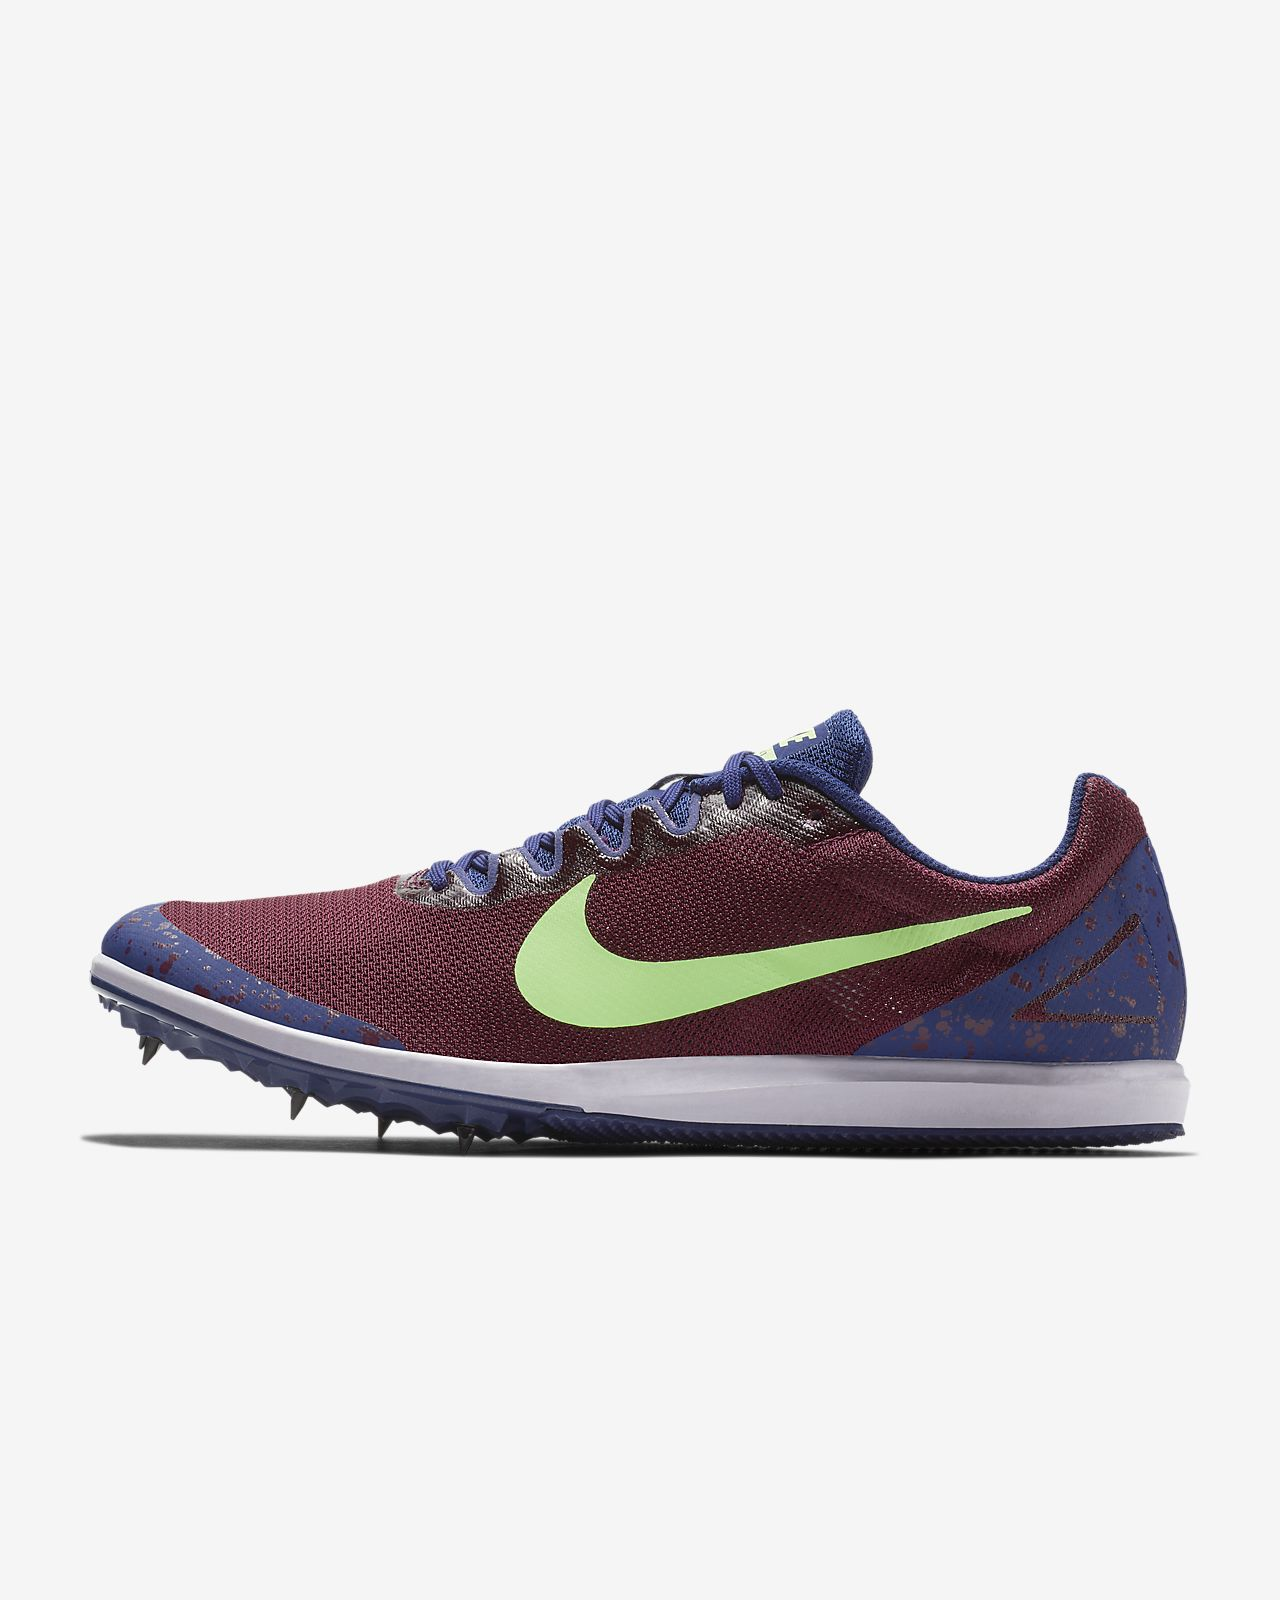 sports shoes a2d24 338c8 ... Nike Zoom Rival D 10 Unisex Track Spike